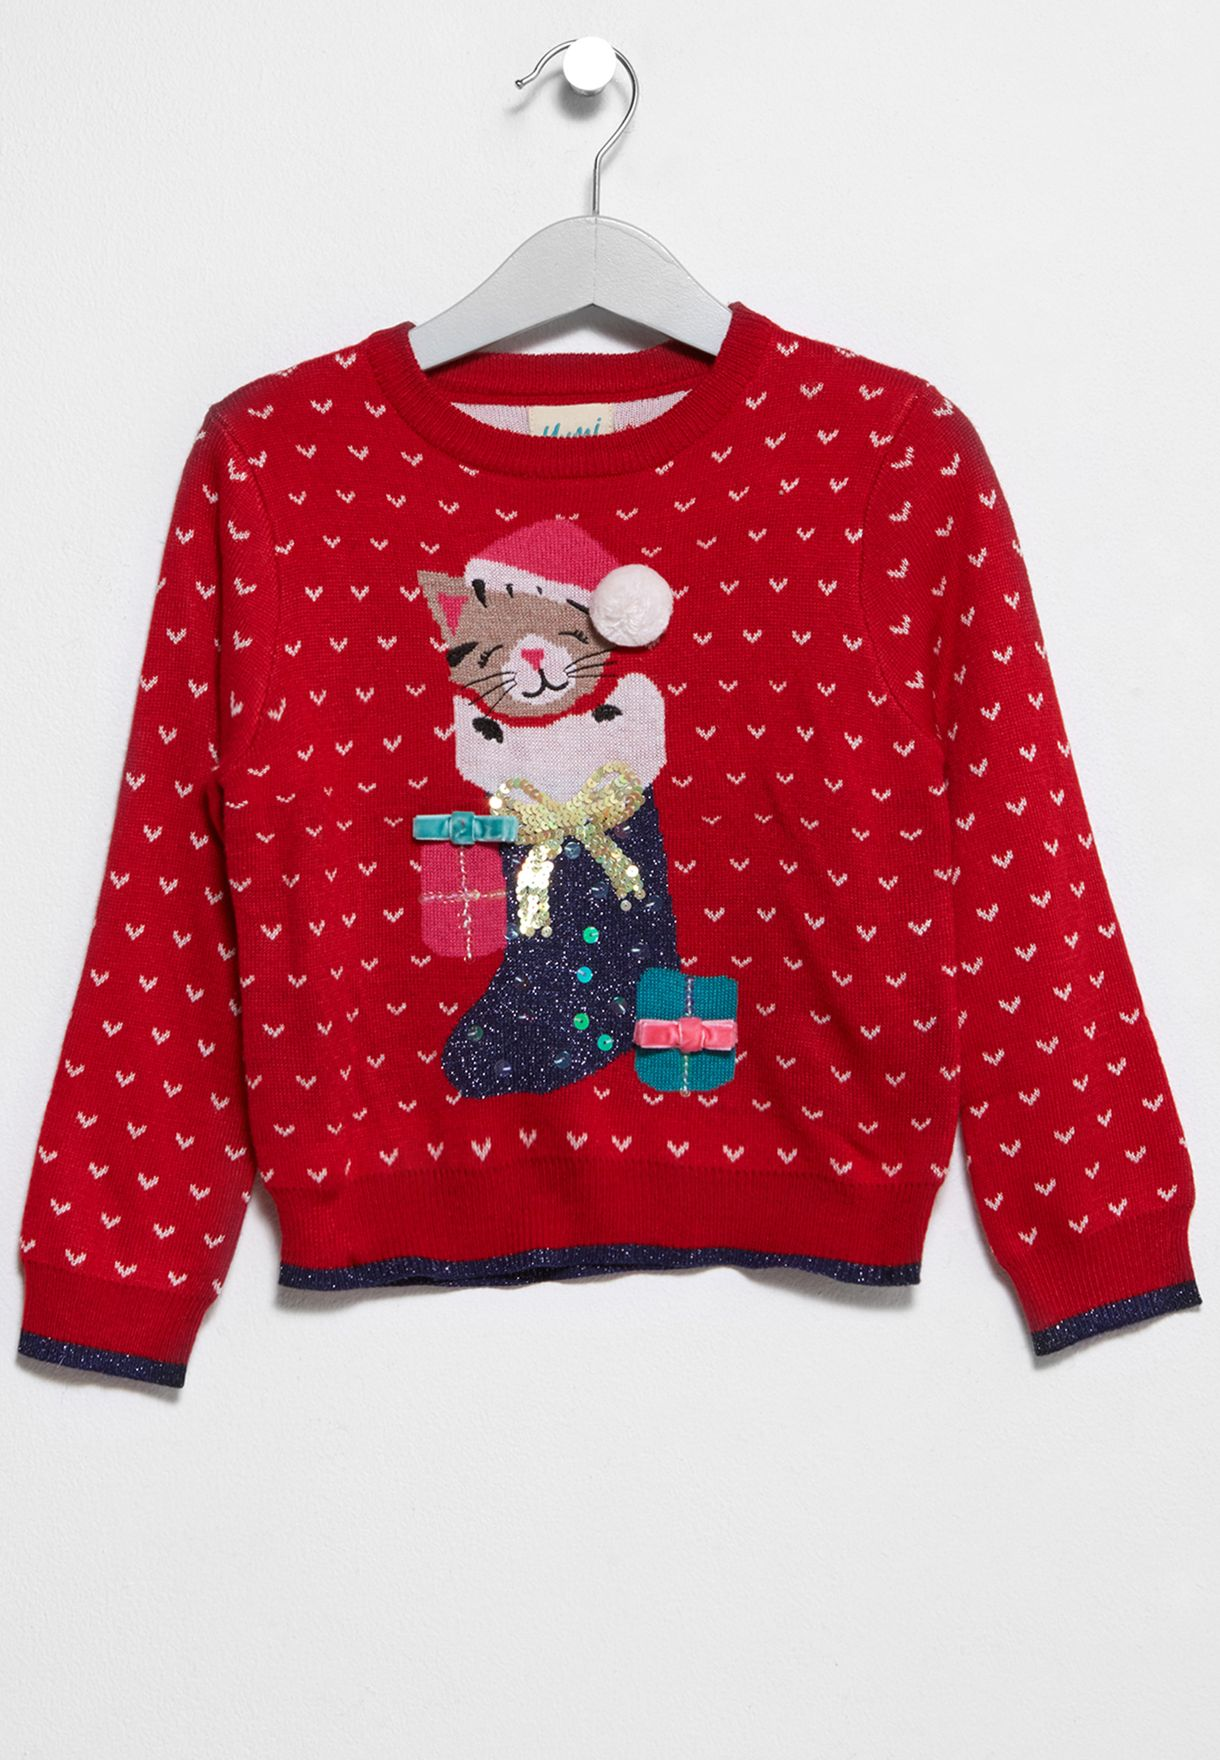 Kitten Christmas Sweater.Tween Kitten Christmas Sweater